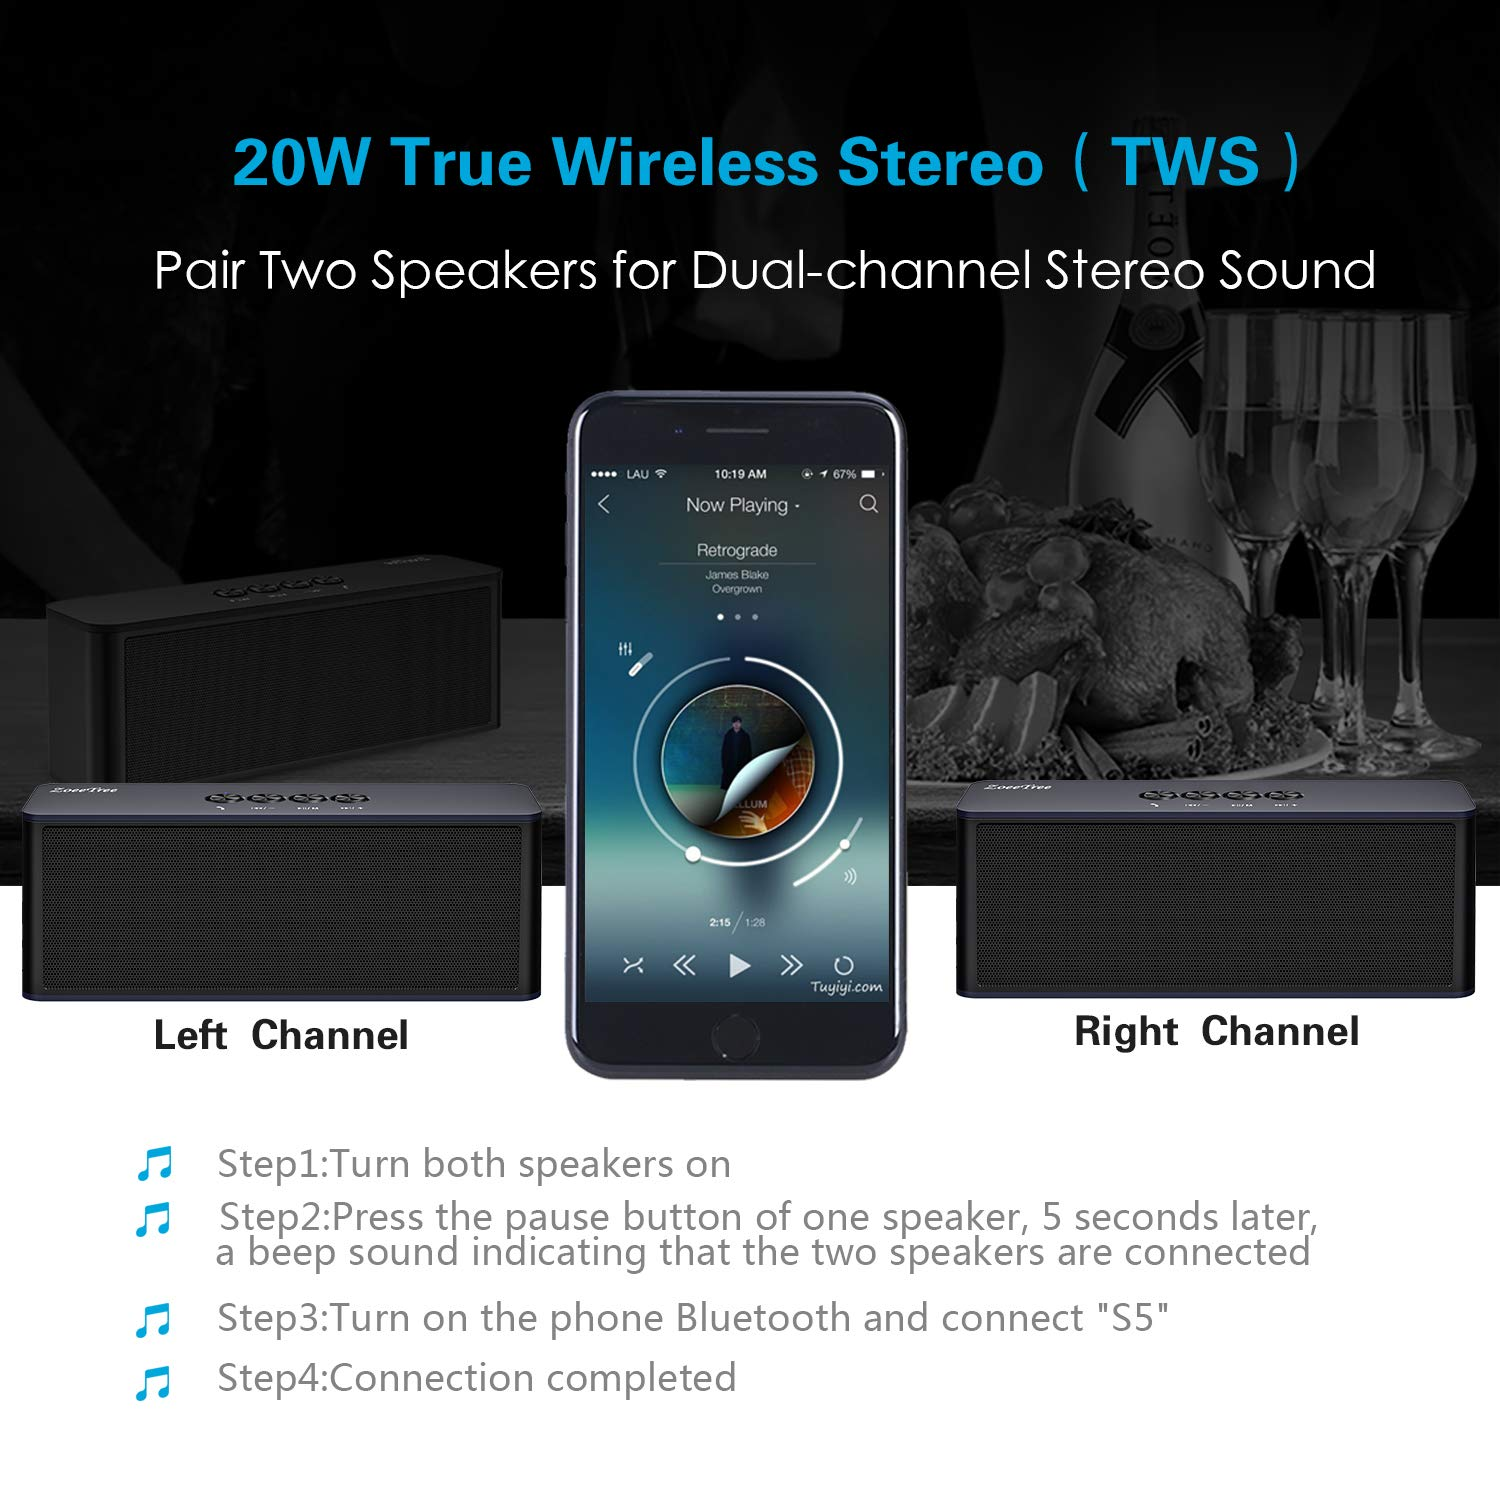 2x5w Stereo Audio Amplifier Based Ta7227 Circuit Diagram Bluetooth Speaker Zoeetree S5 Tws Portable Wireless Speakers With Loud Clear Sound And Rich Bass Perfect Outdoor Built In Mic